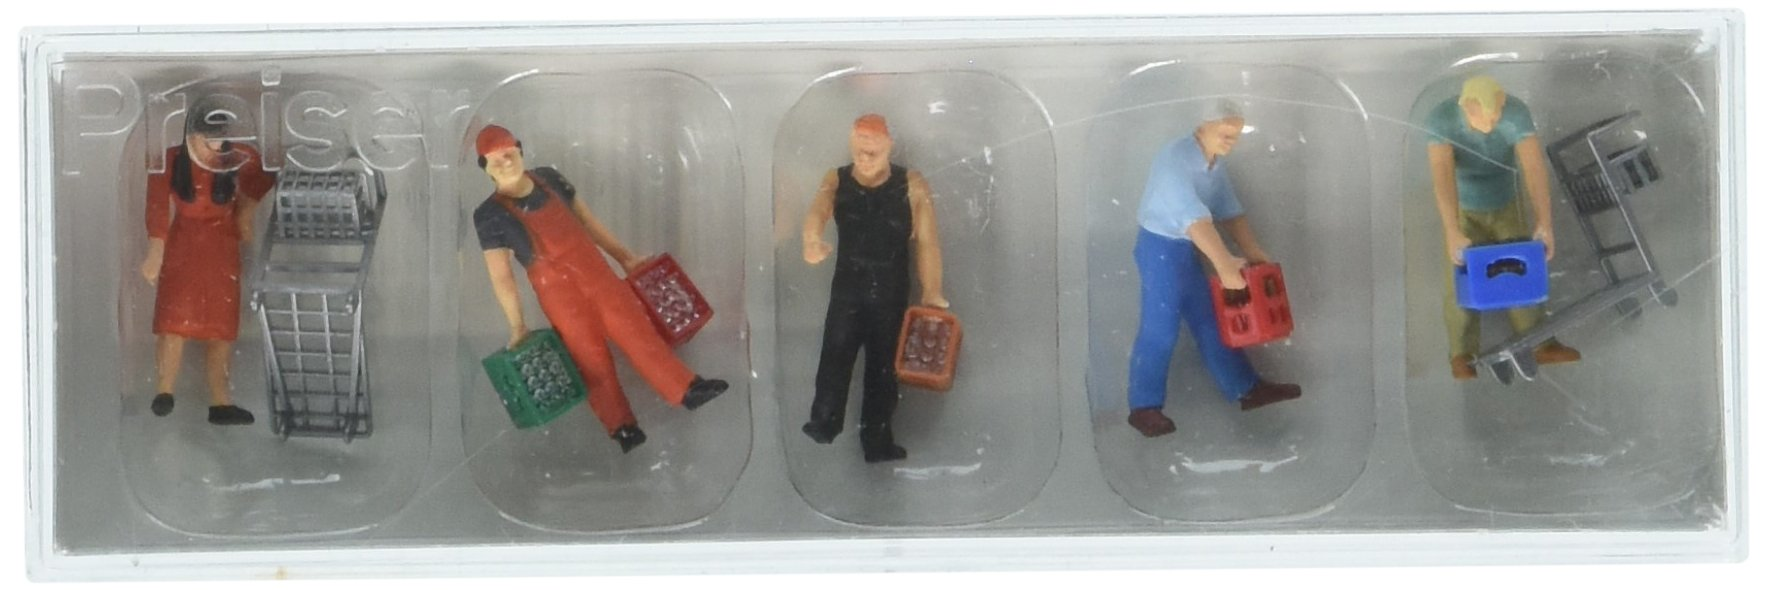 Preiser 10656 at The Cash and Carry Beverage Store Package(5) HO Model Figure